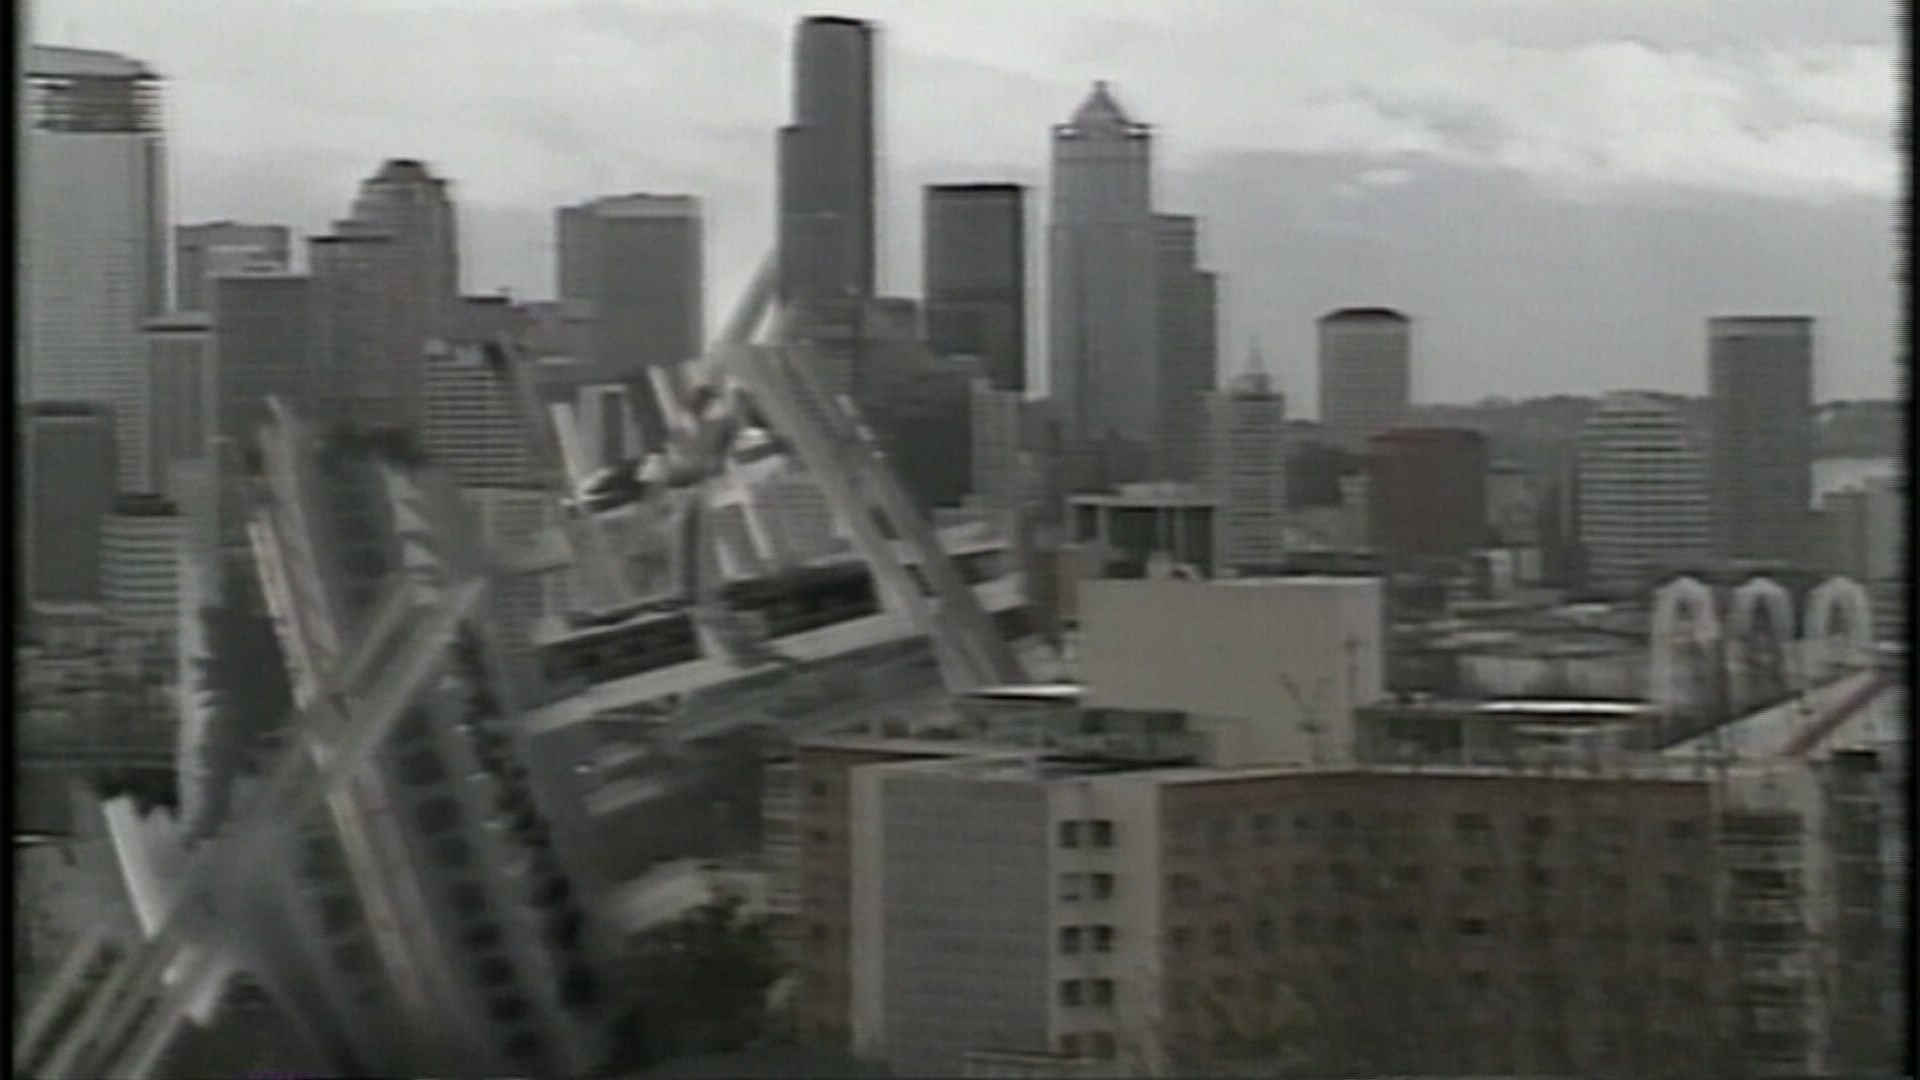 King Falls Am Wallpaper The April Fools Day Prank That Sent Seattle Into A Panic